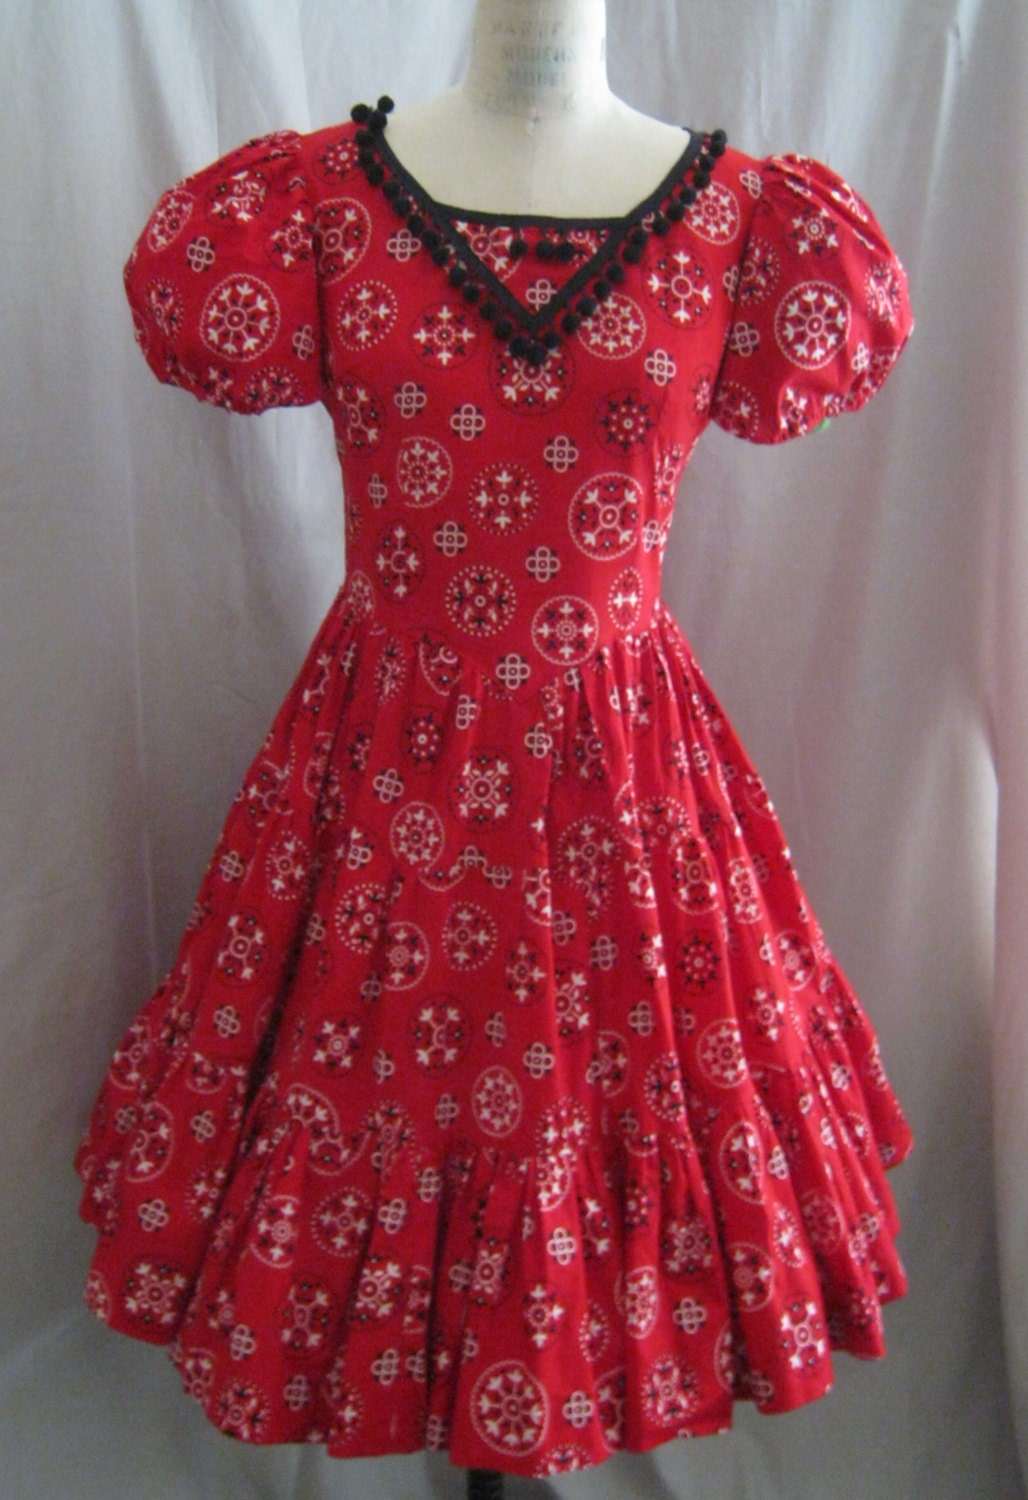 Vintage 60s Square Dance Dress Bandana Print Country Western